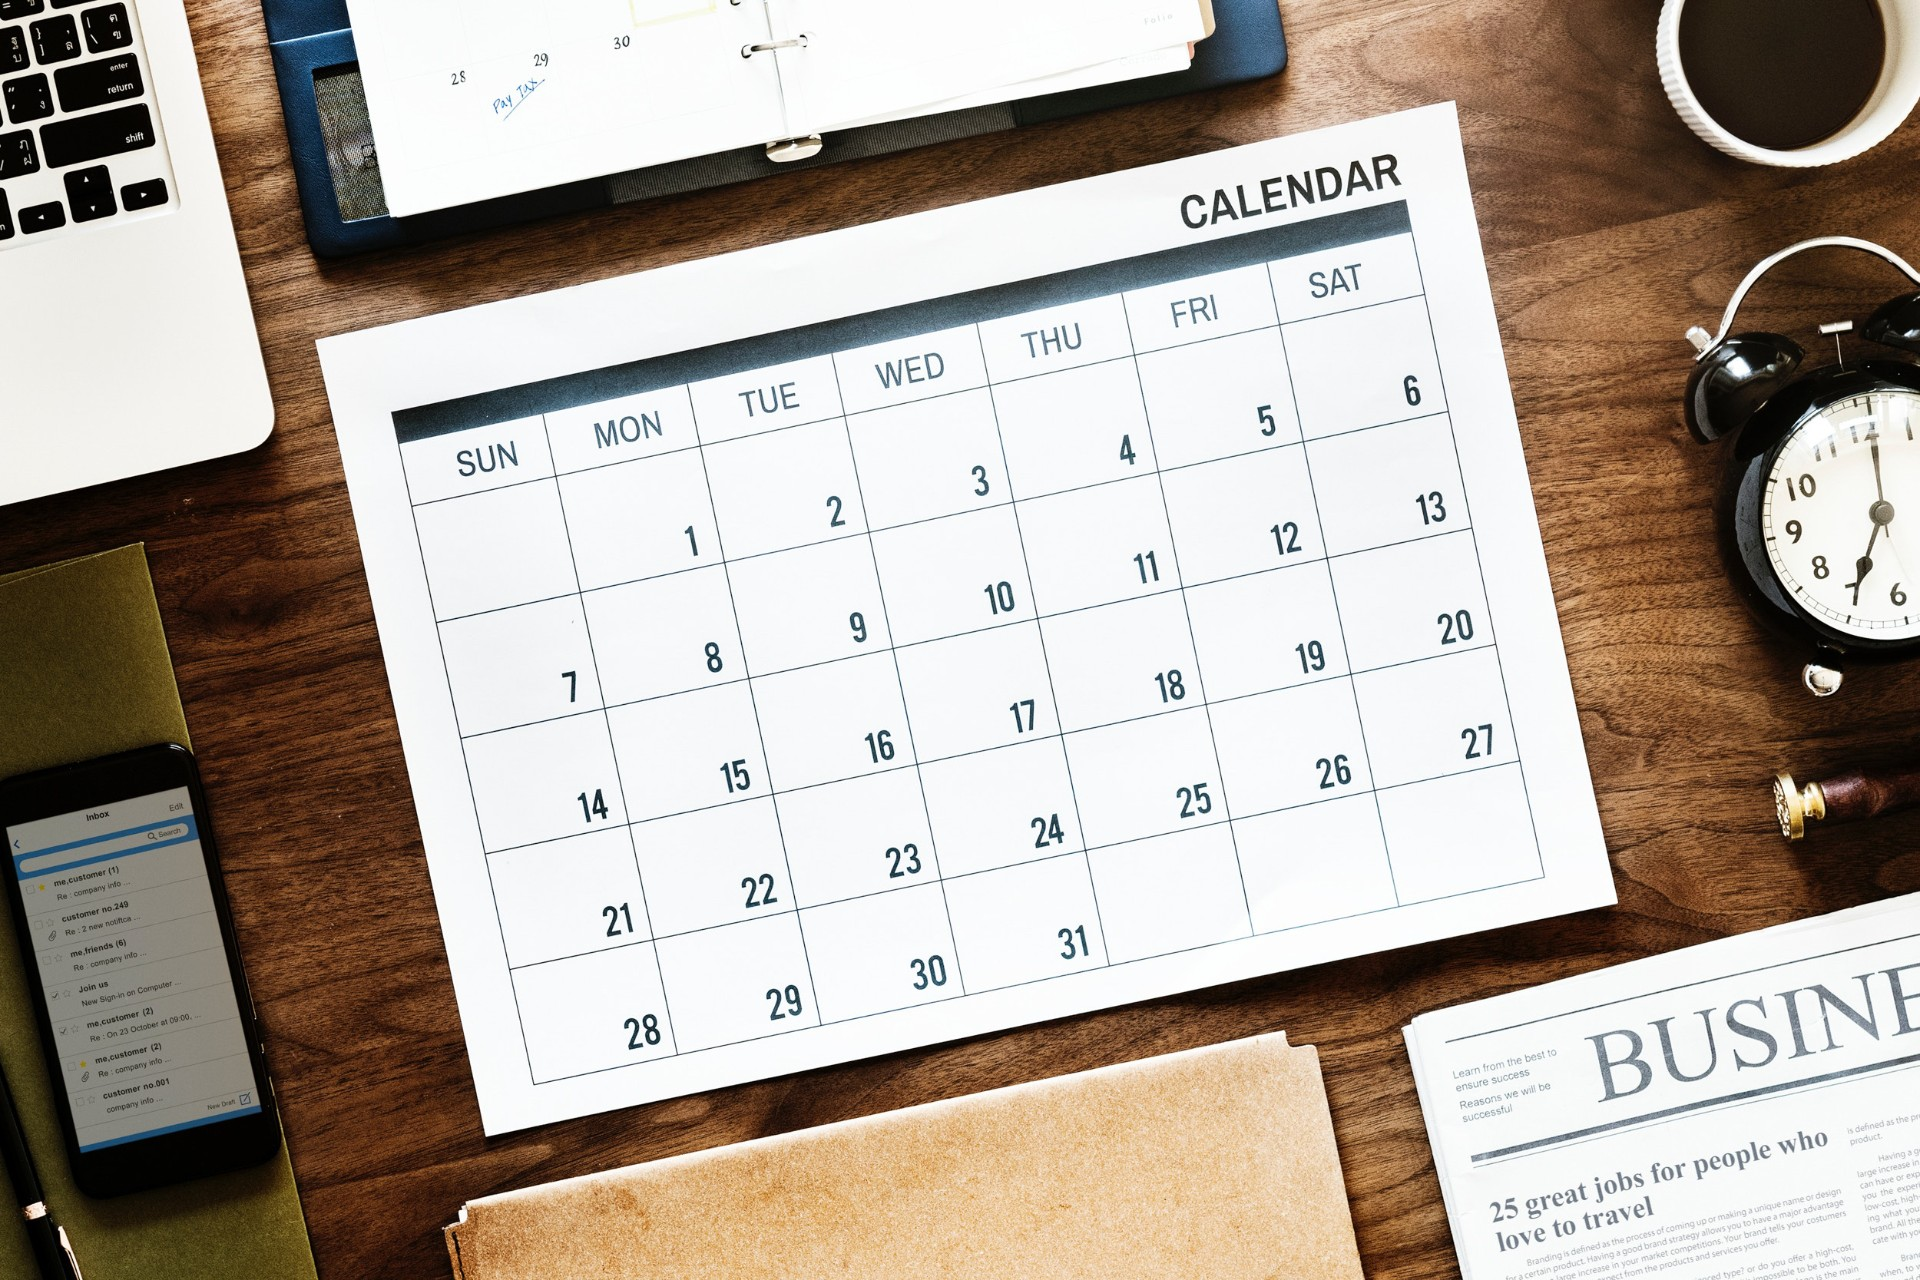 Calendar month dates diary schedule clock paper phone laptop planner on wood table Long distance relationship tips. Long distance relationship advice. Click through to read more...